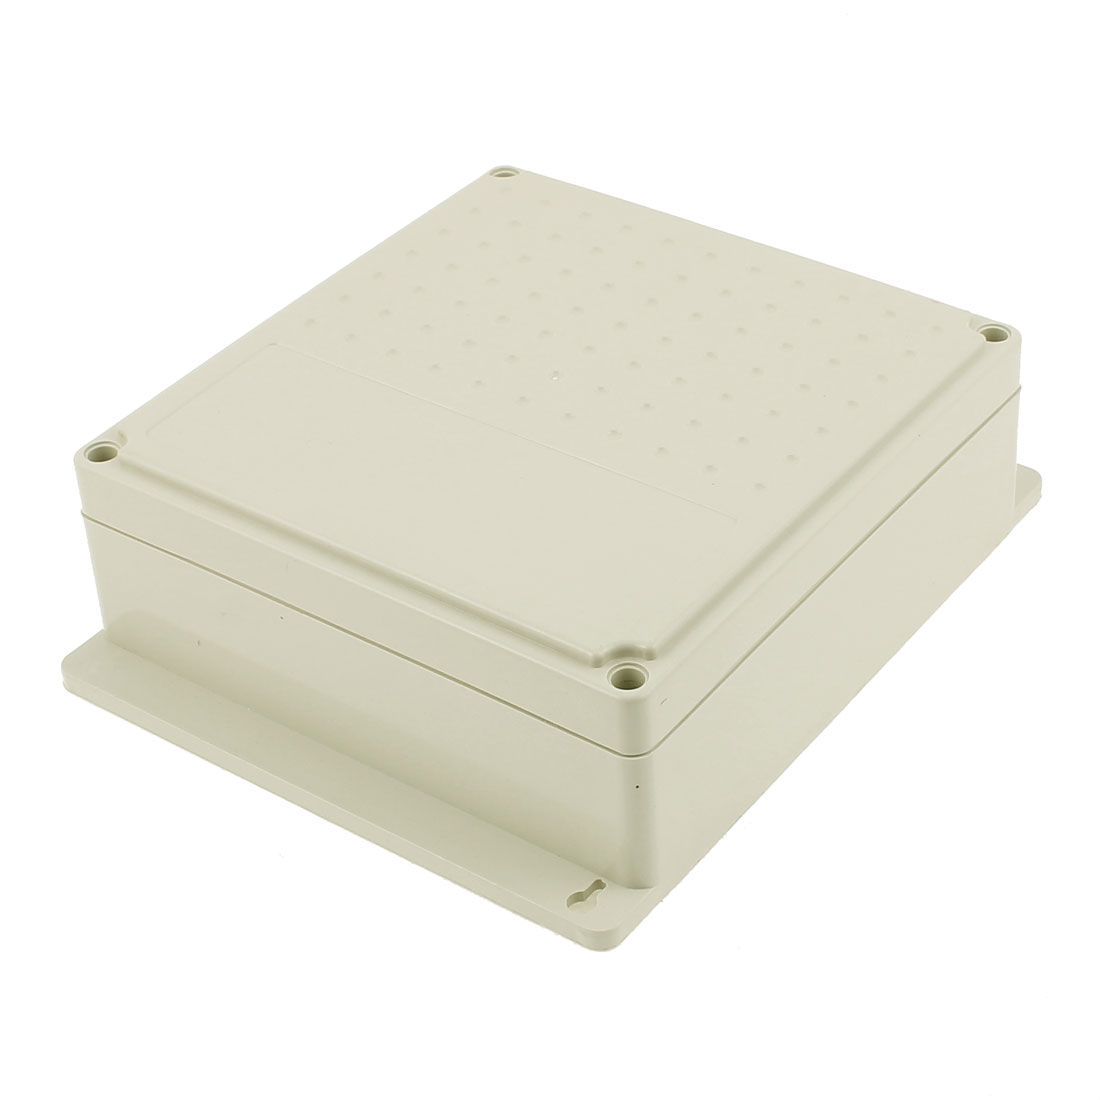 230 x 190 x 70mm Dustproof IP65 Junction Box Terminal Connecting Box Enclosure